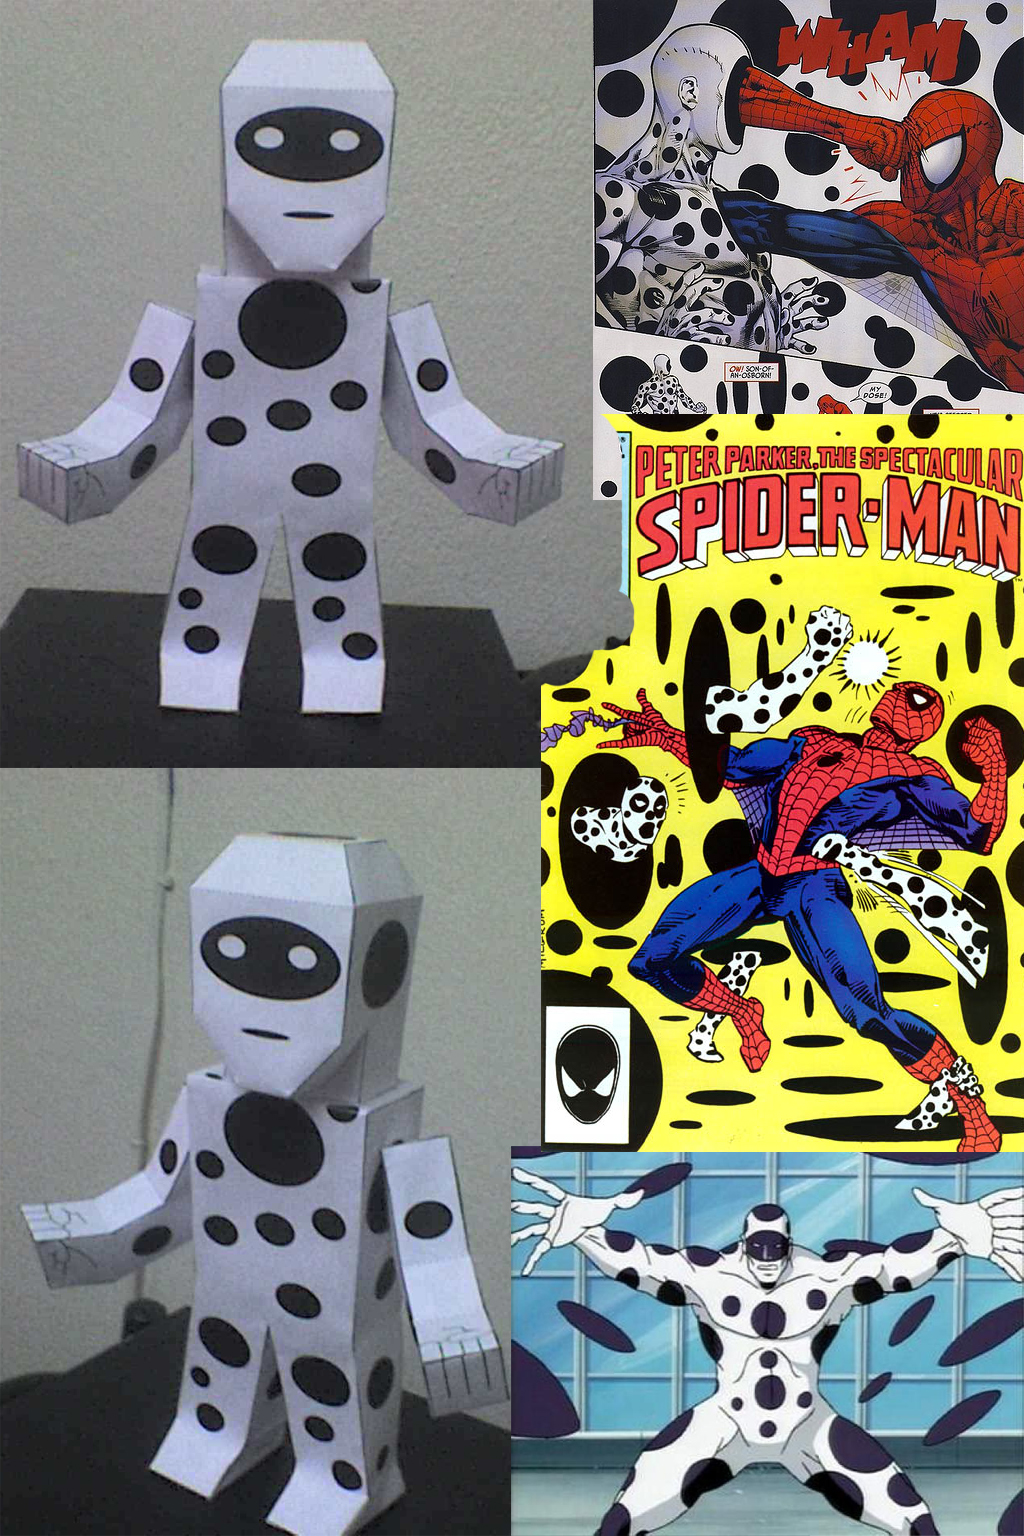 SPOT LA MANCHA SPIDERMAN PAPERCRAFT by tenchaos